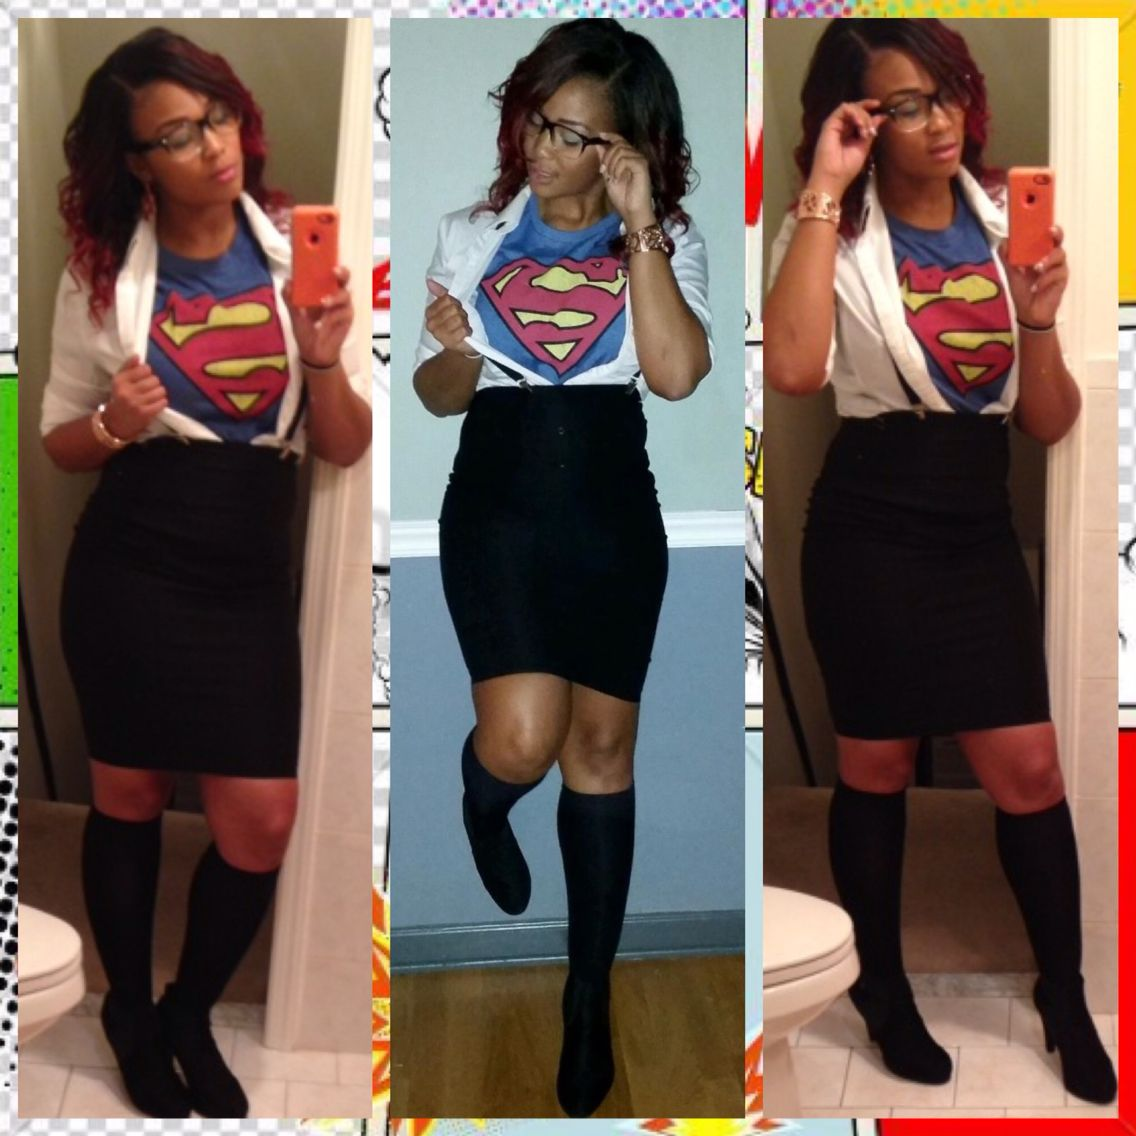 Diy superwoman costume idea holidays pinterest costumes my superwoman diy costume inspired by pinterest solutioingenieria Choice Image